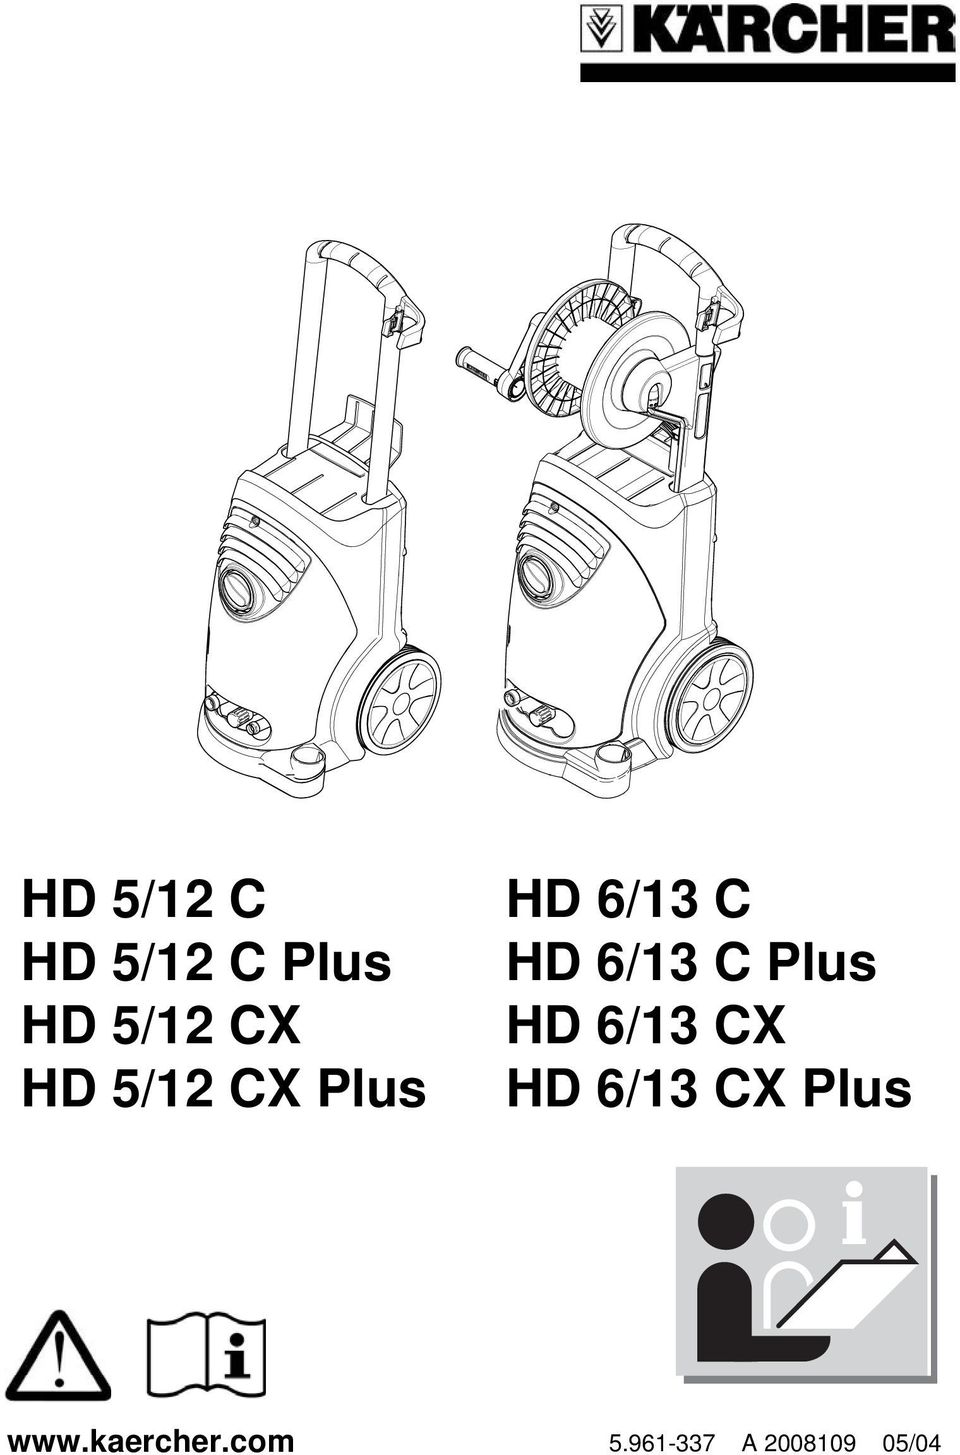 Plus HD 6/13 CX HD 6/13 CX Plus www.